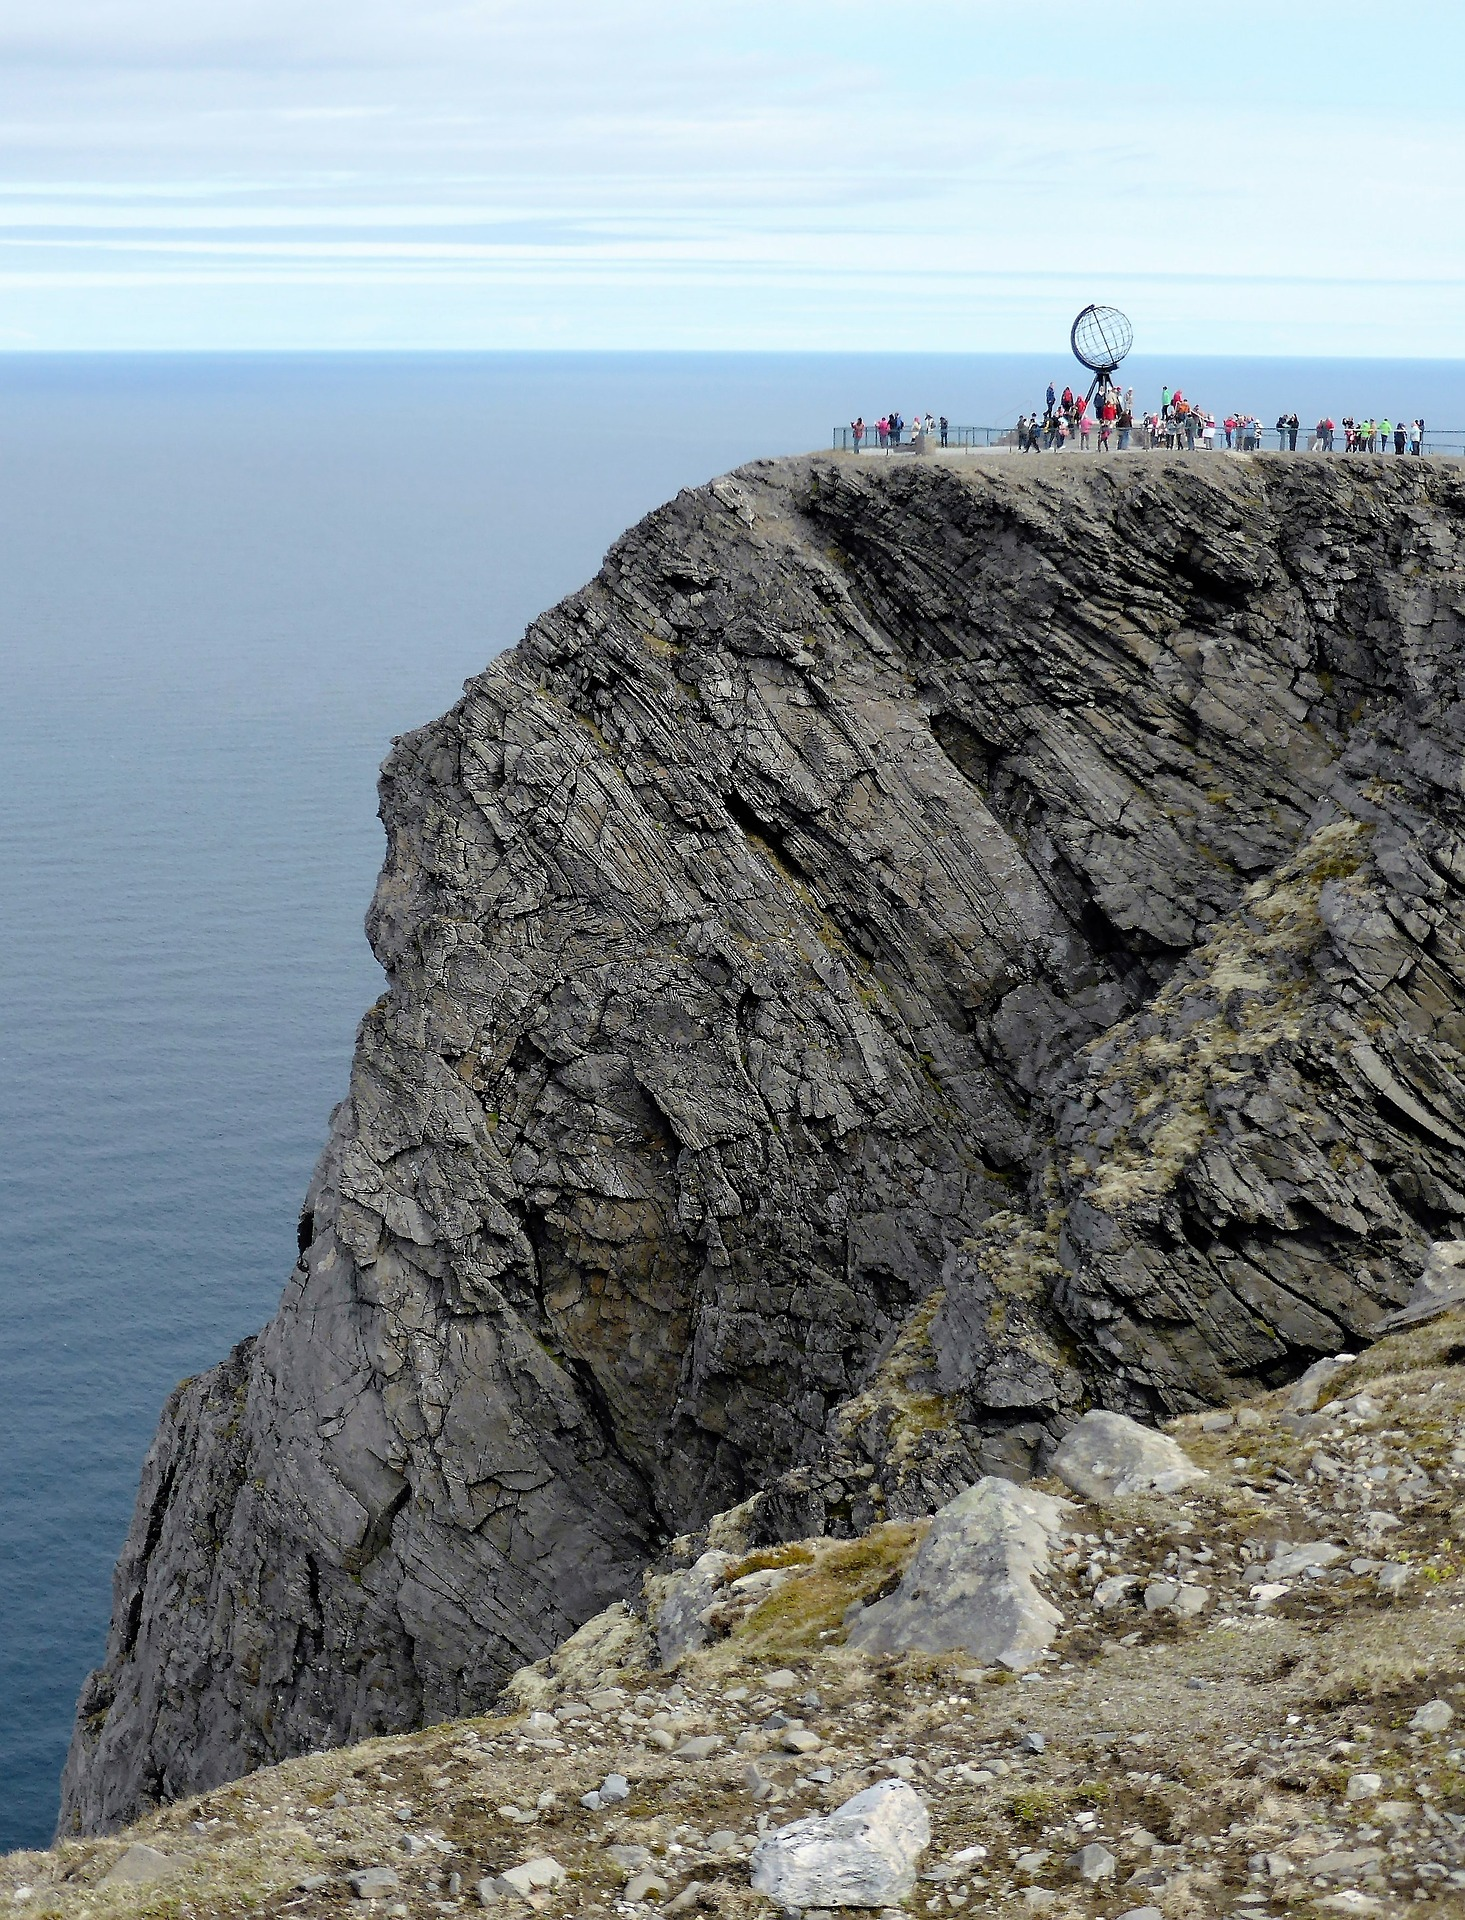 north-cape-1700483_1920